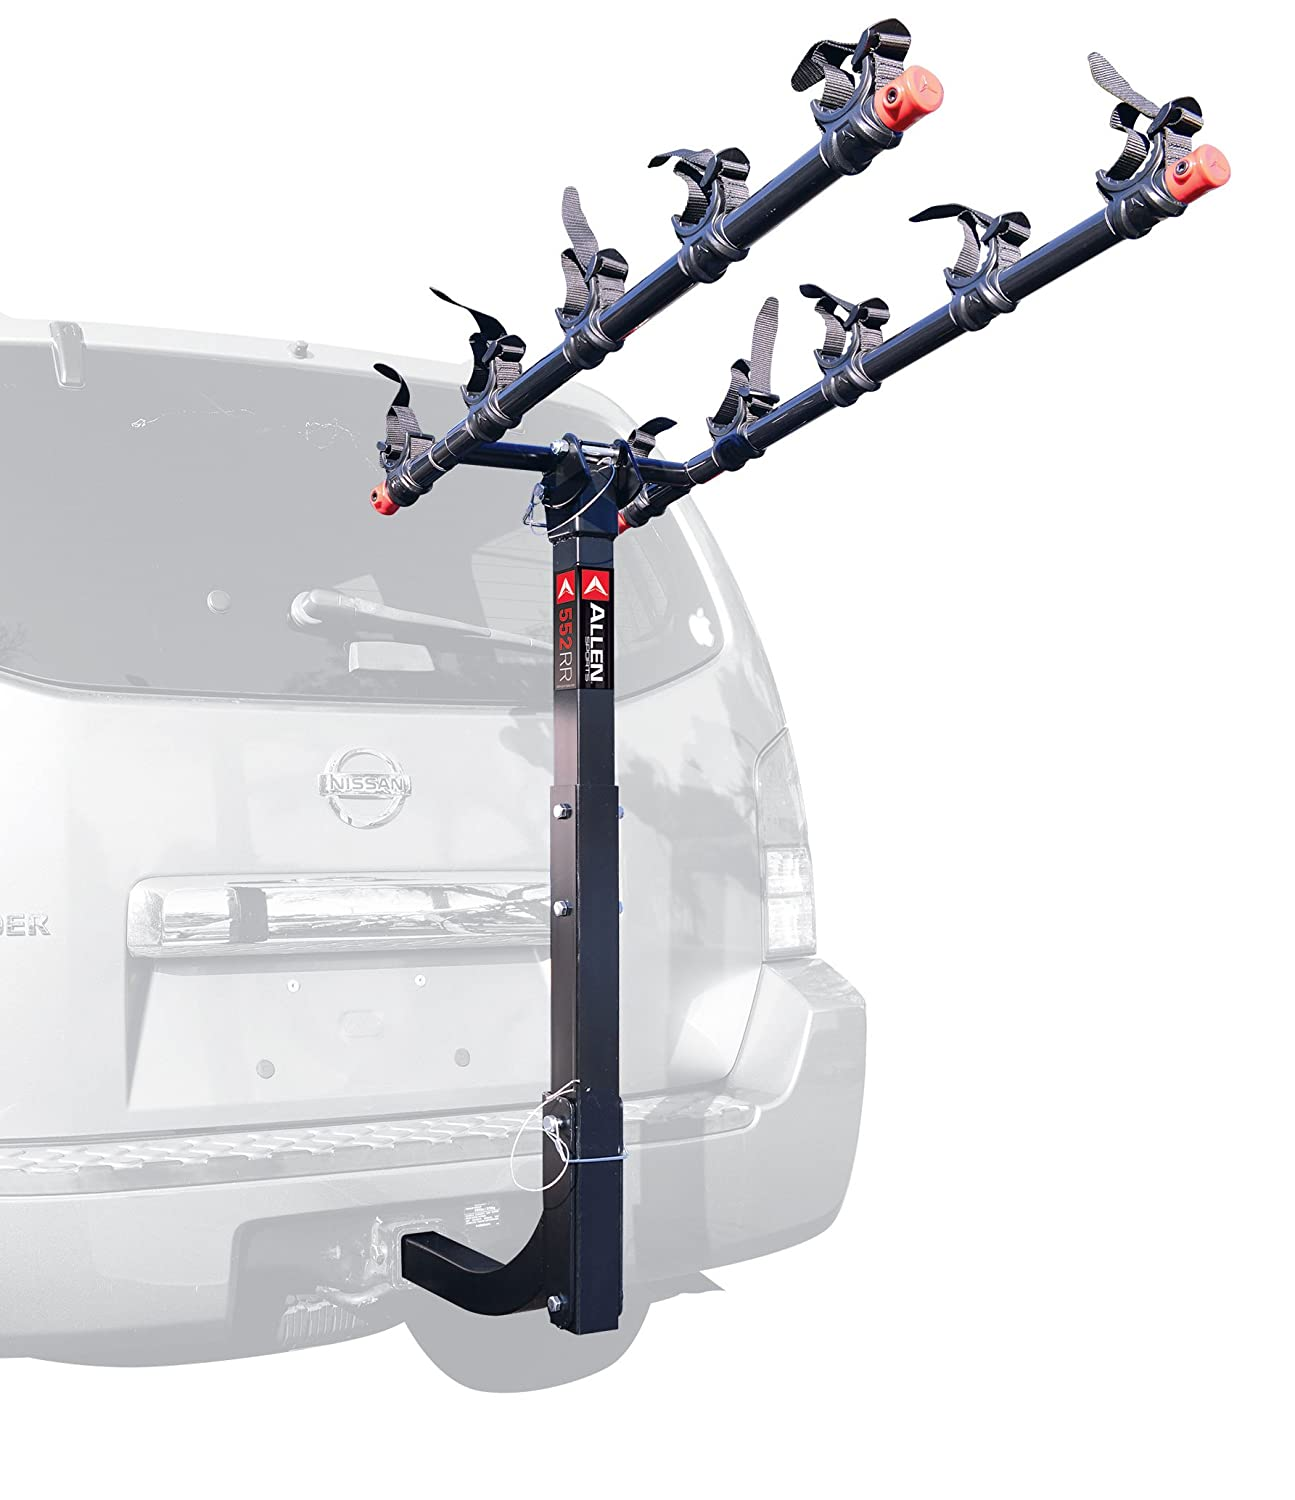 rack heavy lbs steel bike car basket travel duty carrier luggage bicycle cargo suv itm for